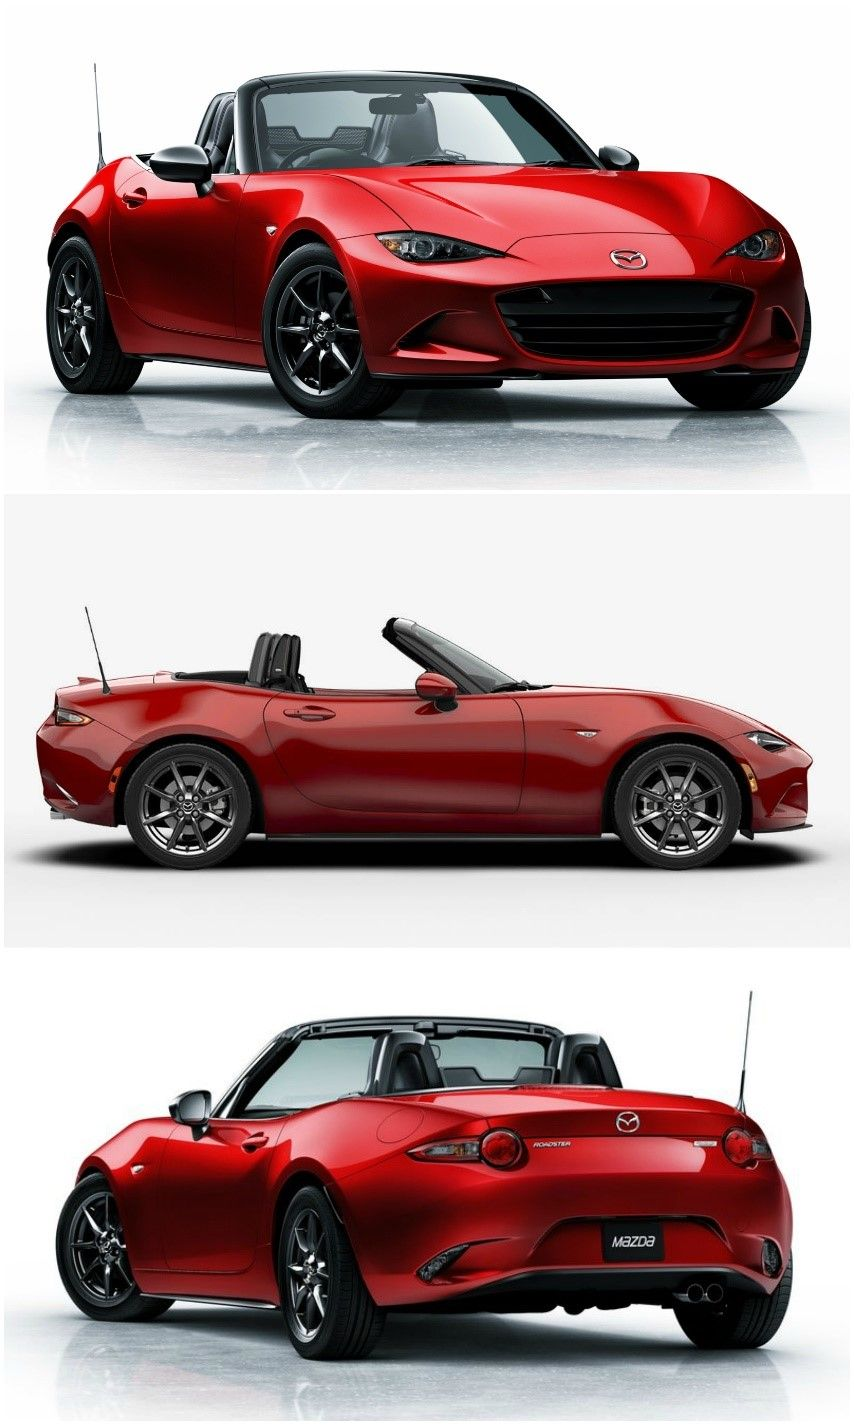 2020 Mazda MX5 Miata Review, Pricing, and Specs Mazda